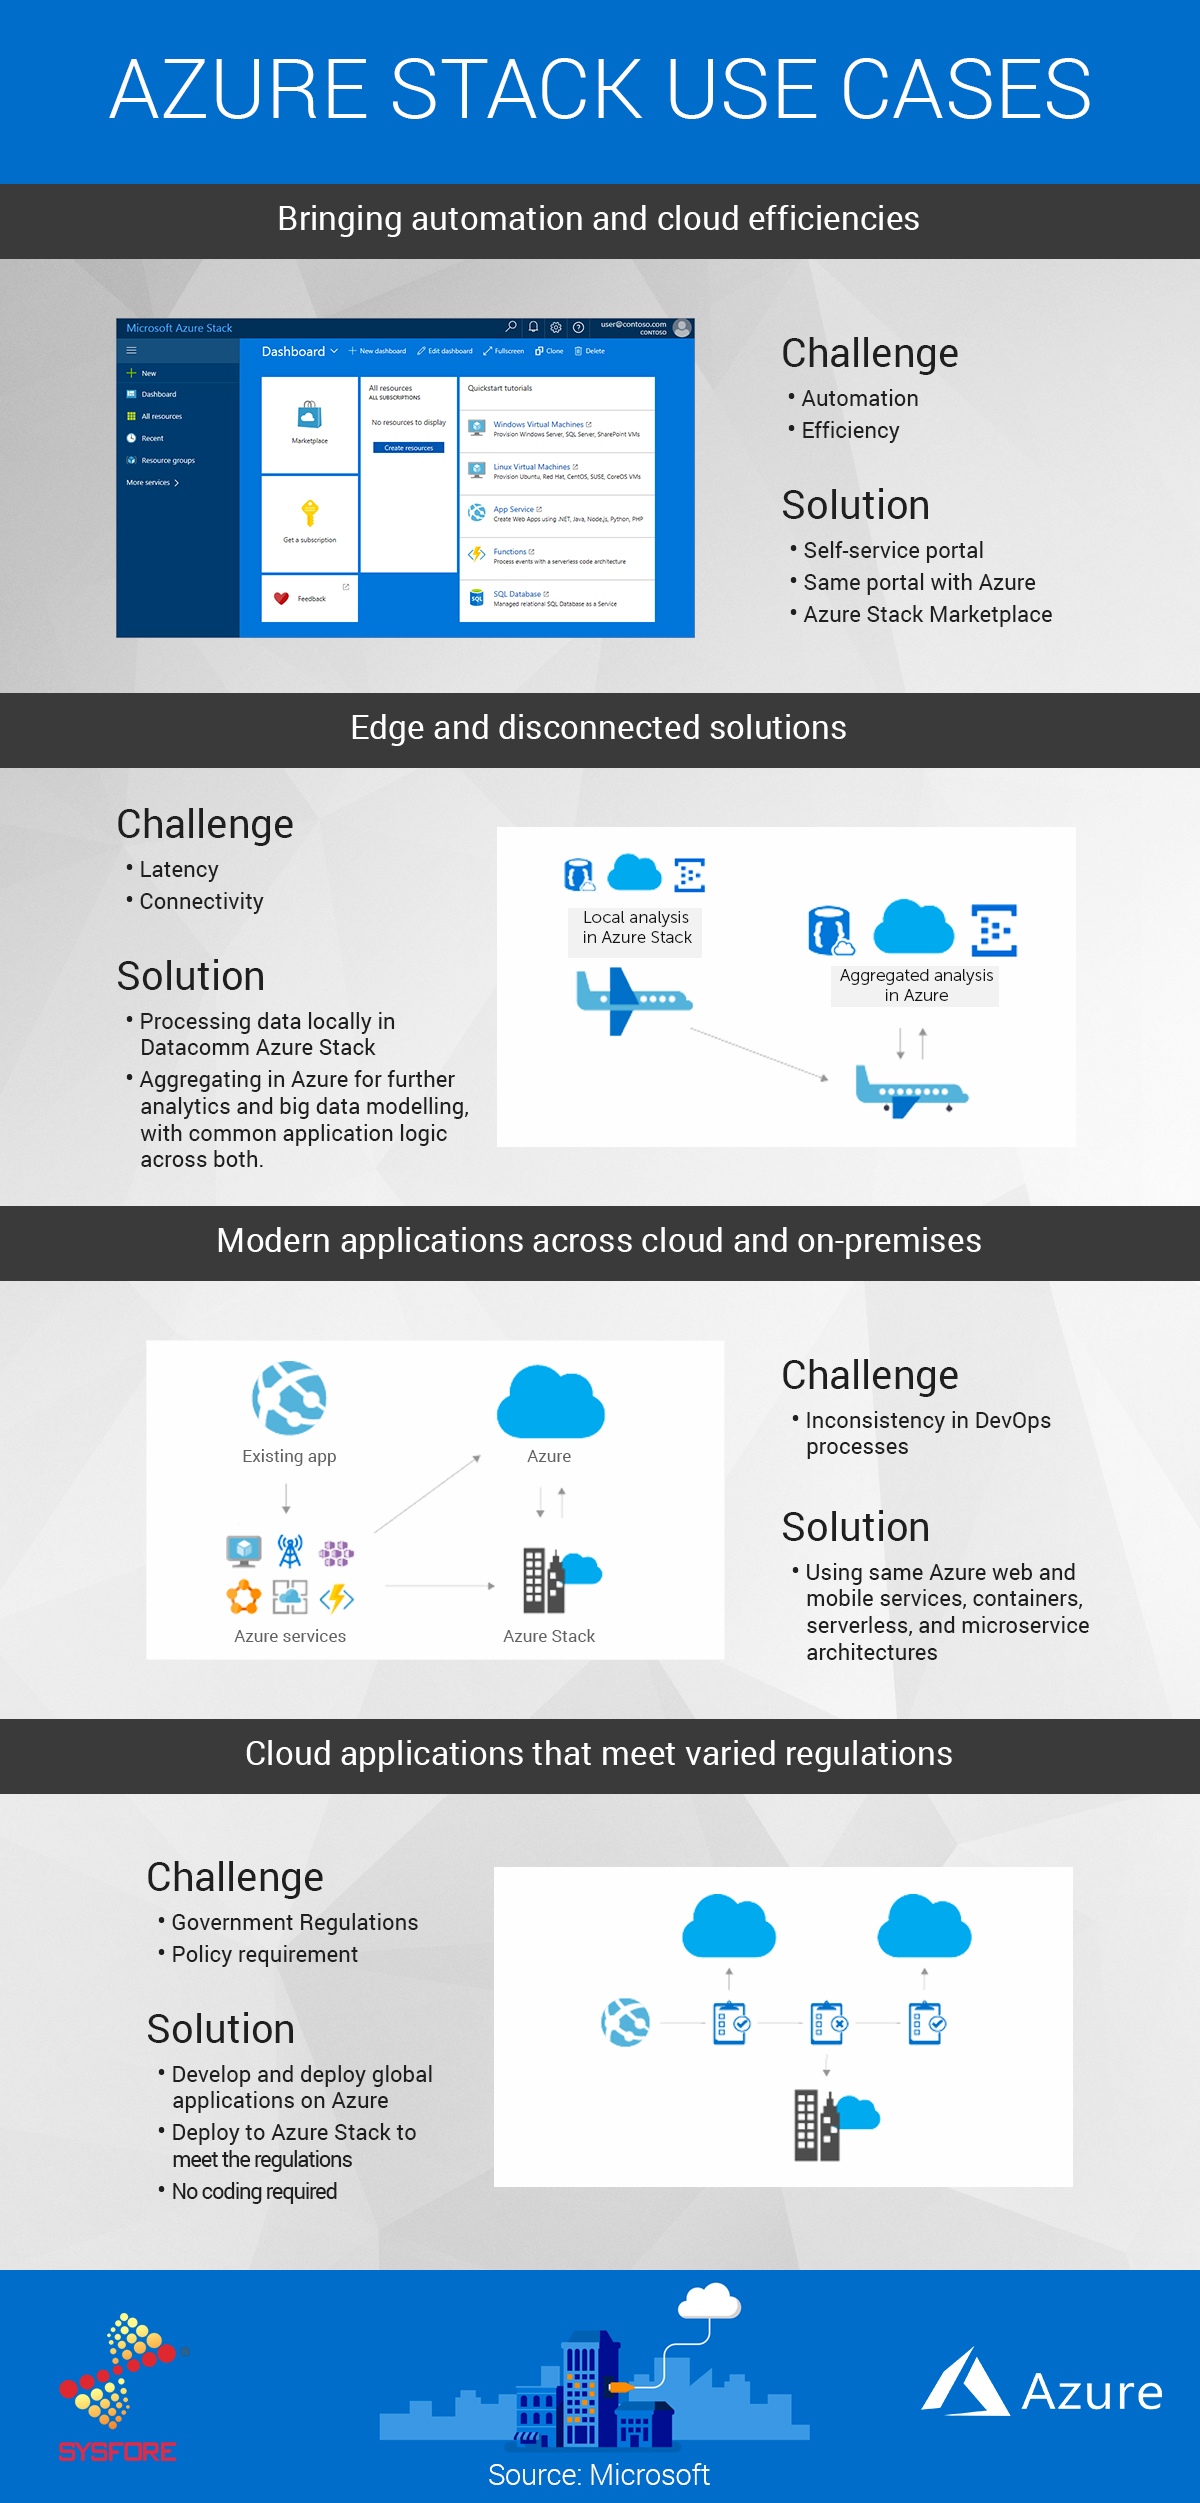 Azure Stack and Use Cases| Sysfore Blog